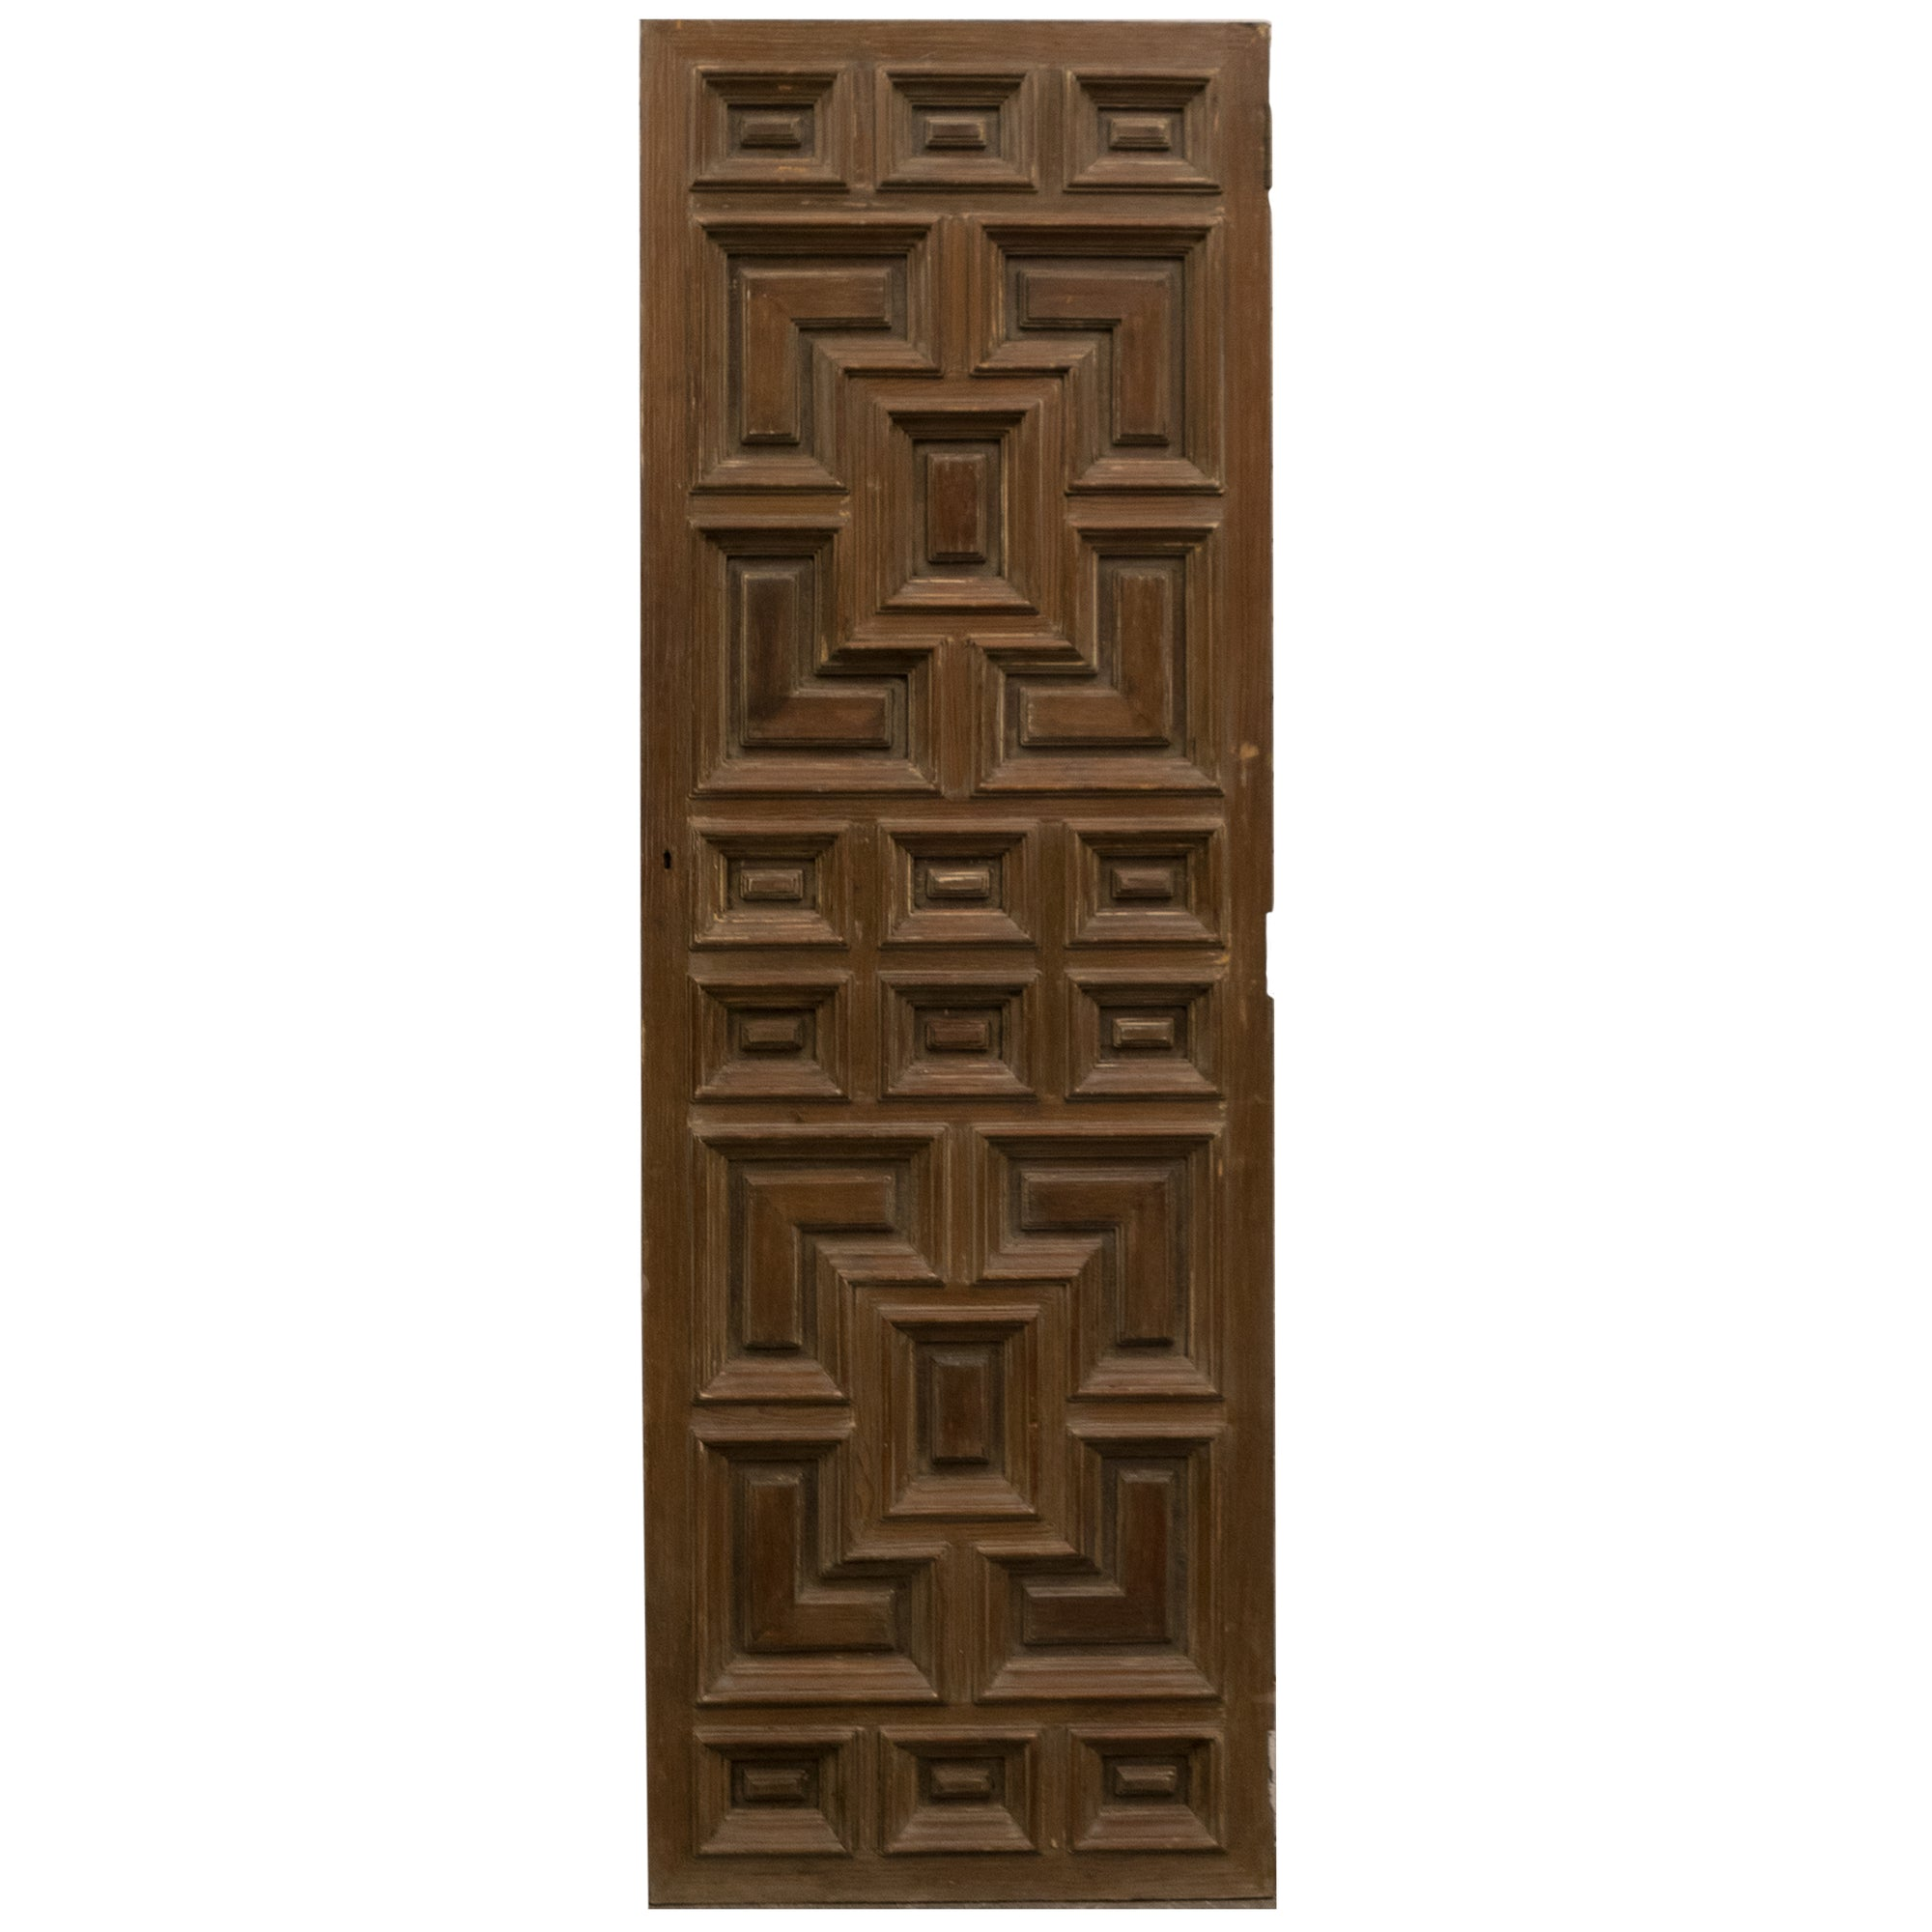 Reclaimed Panelled Pine Door 180cm x 59.3cm - architectural-forum